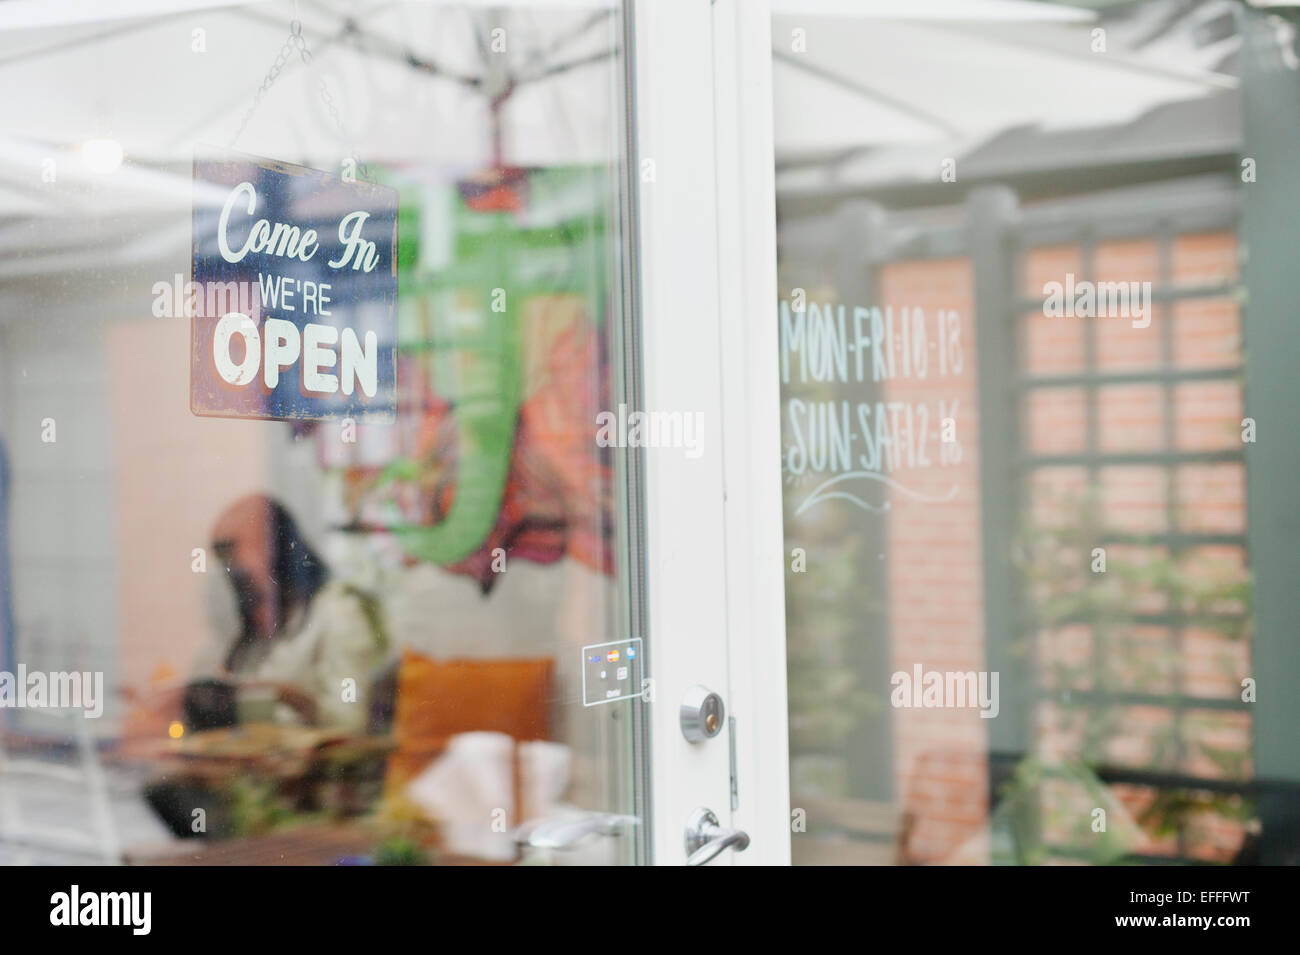 Open sign hanging on entrance of cafeteria Stock Photo